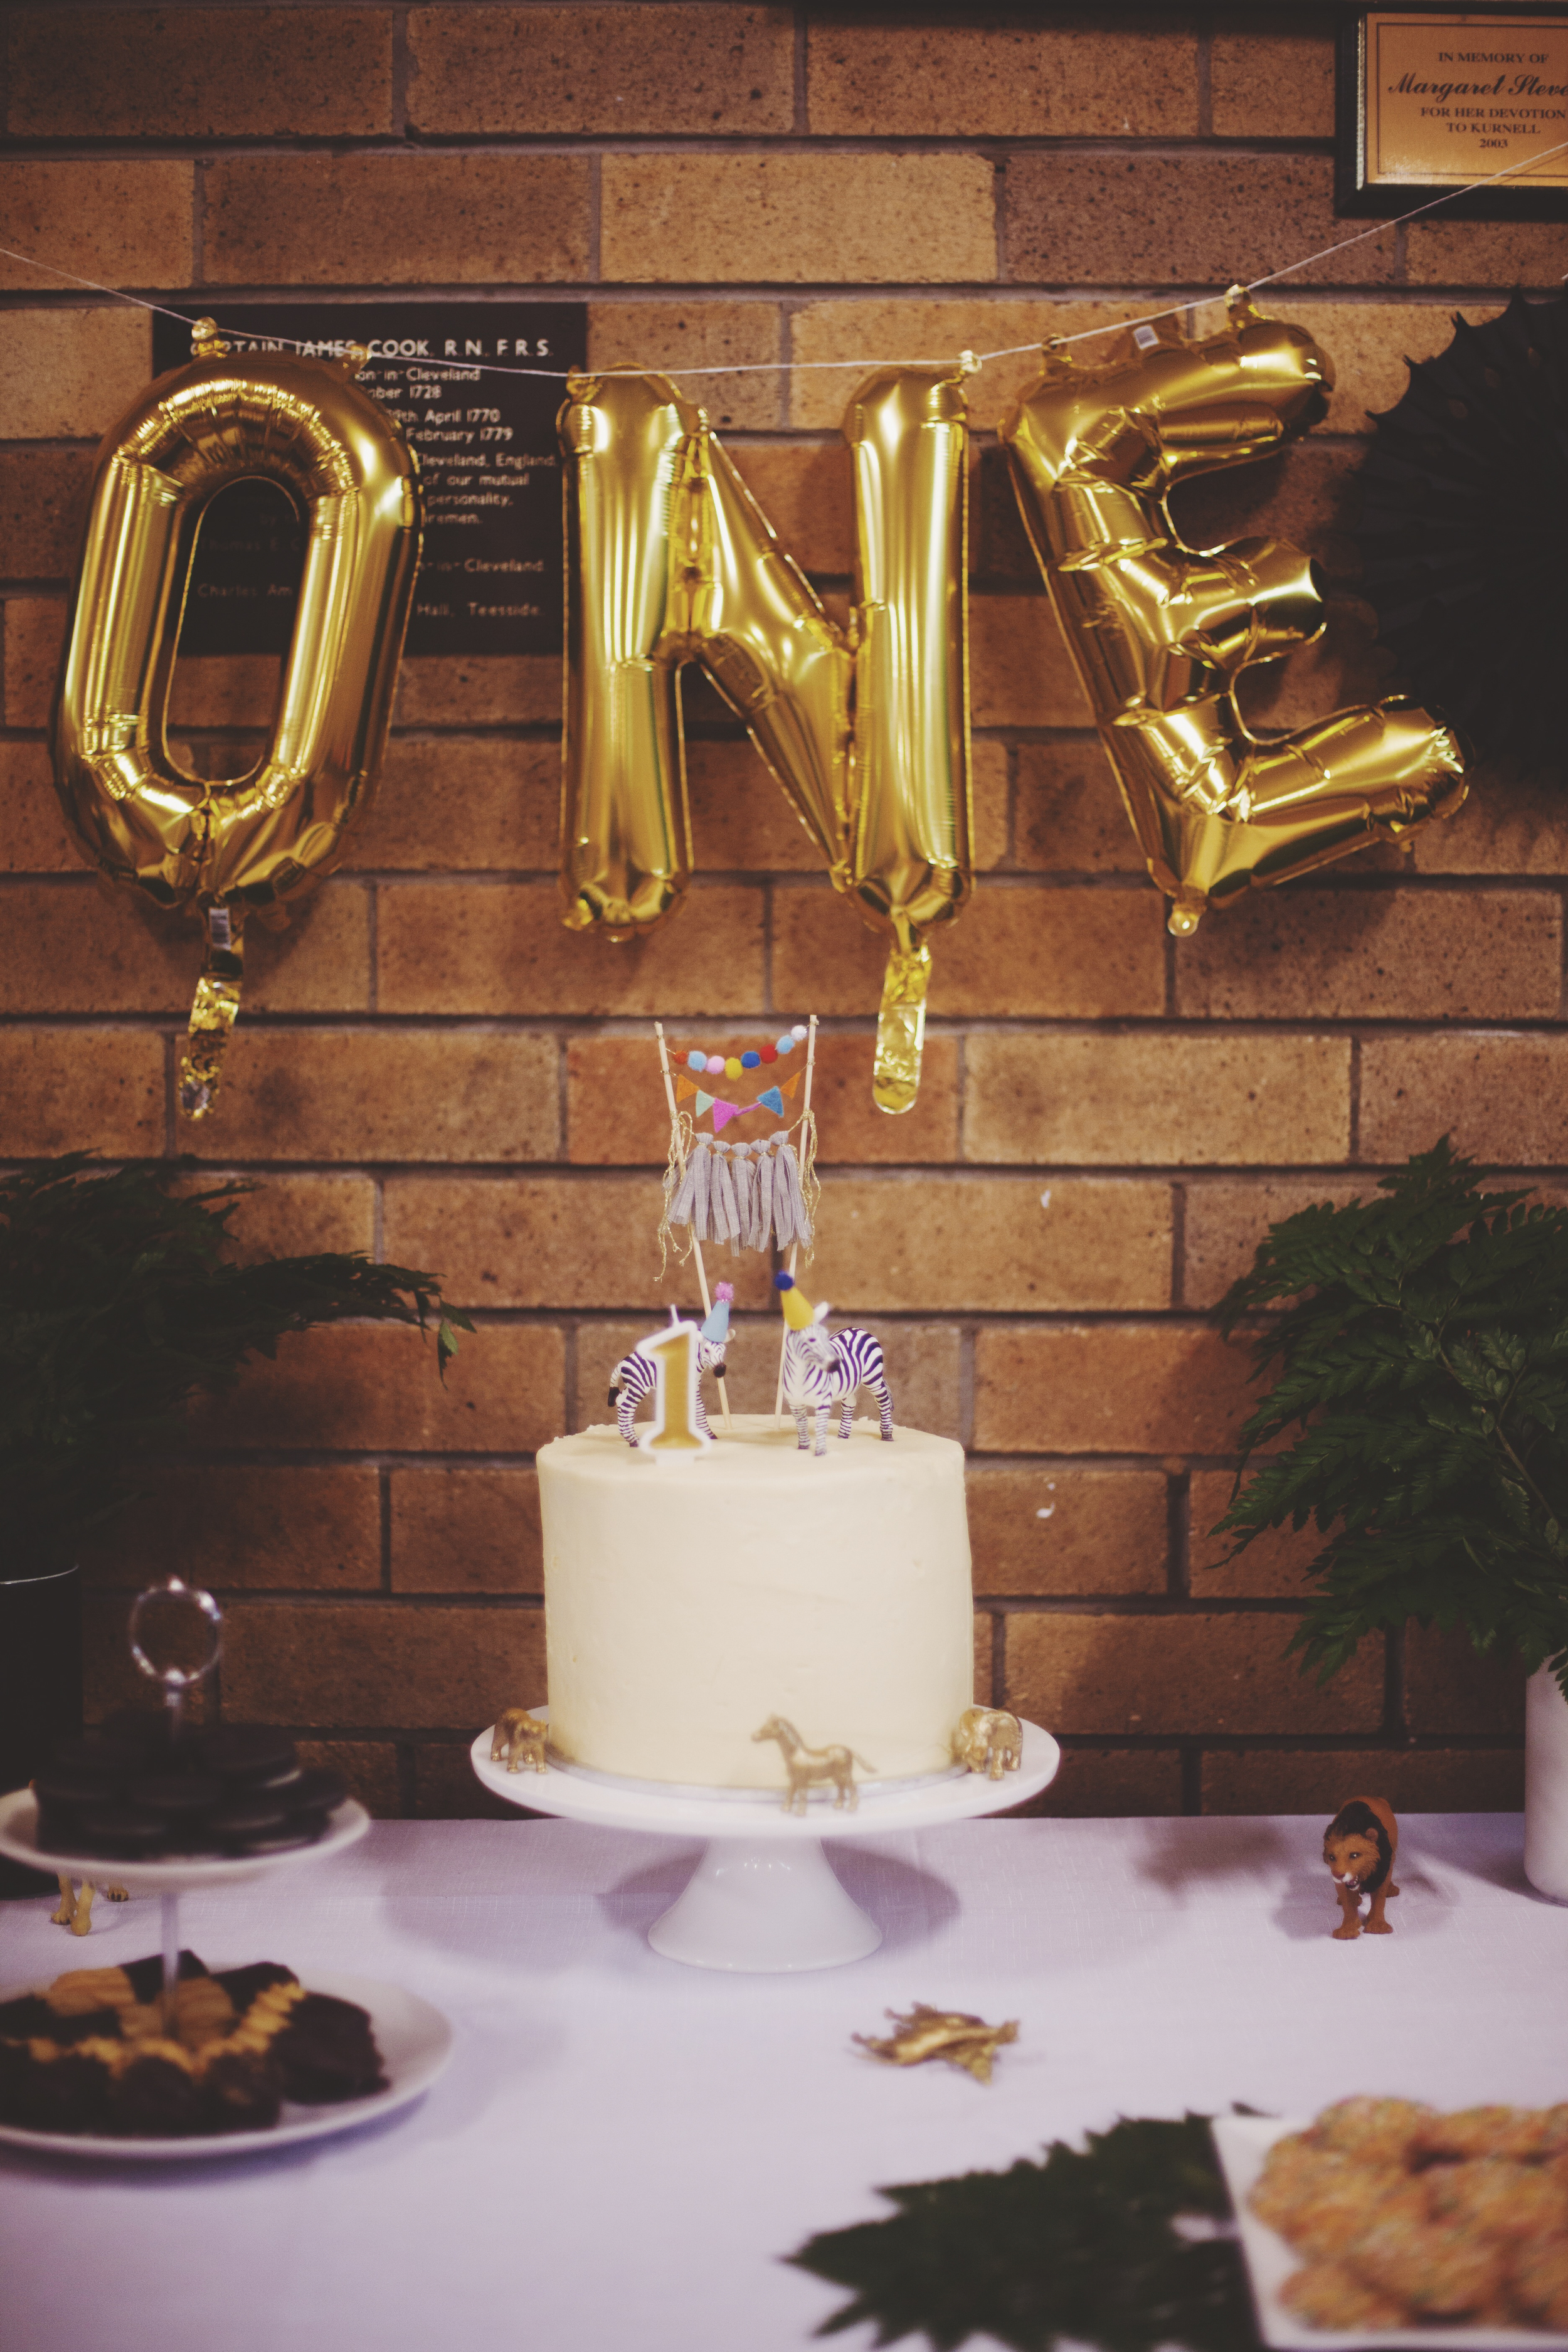 birthday cake with gold balloons above that spell the word one